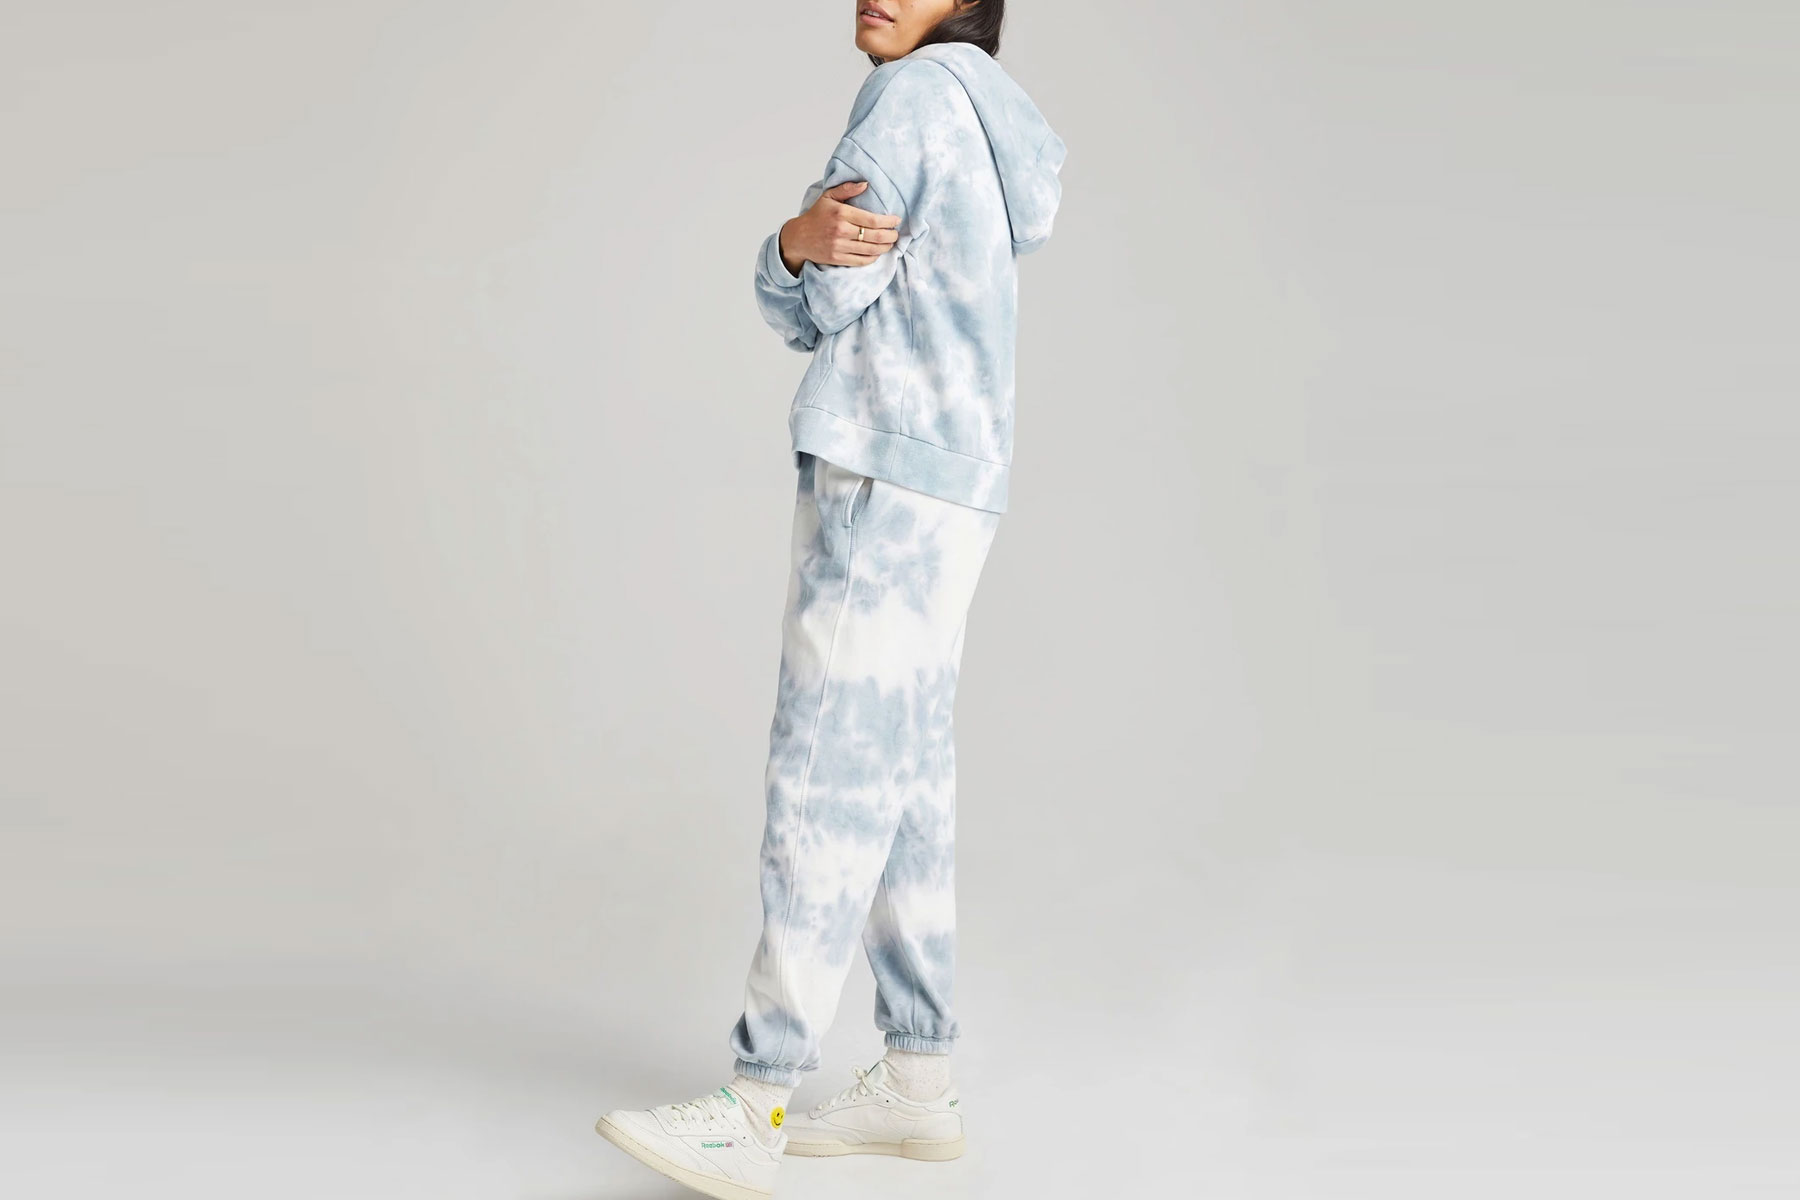 Blue and white tie-dye sweatsuit